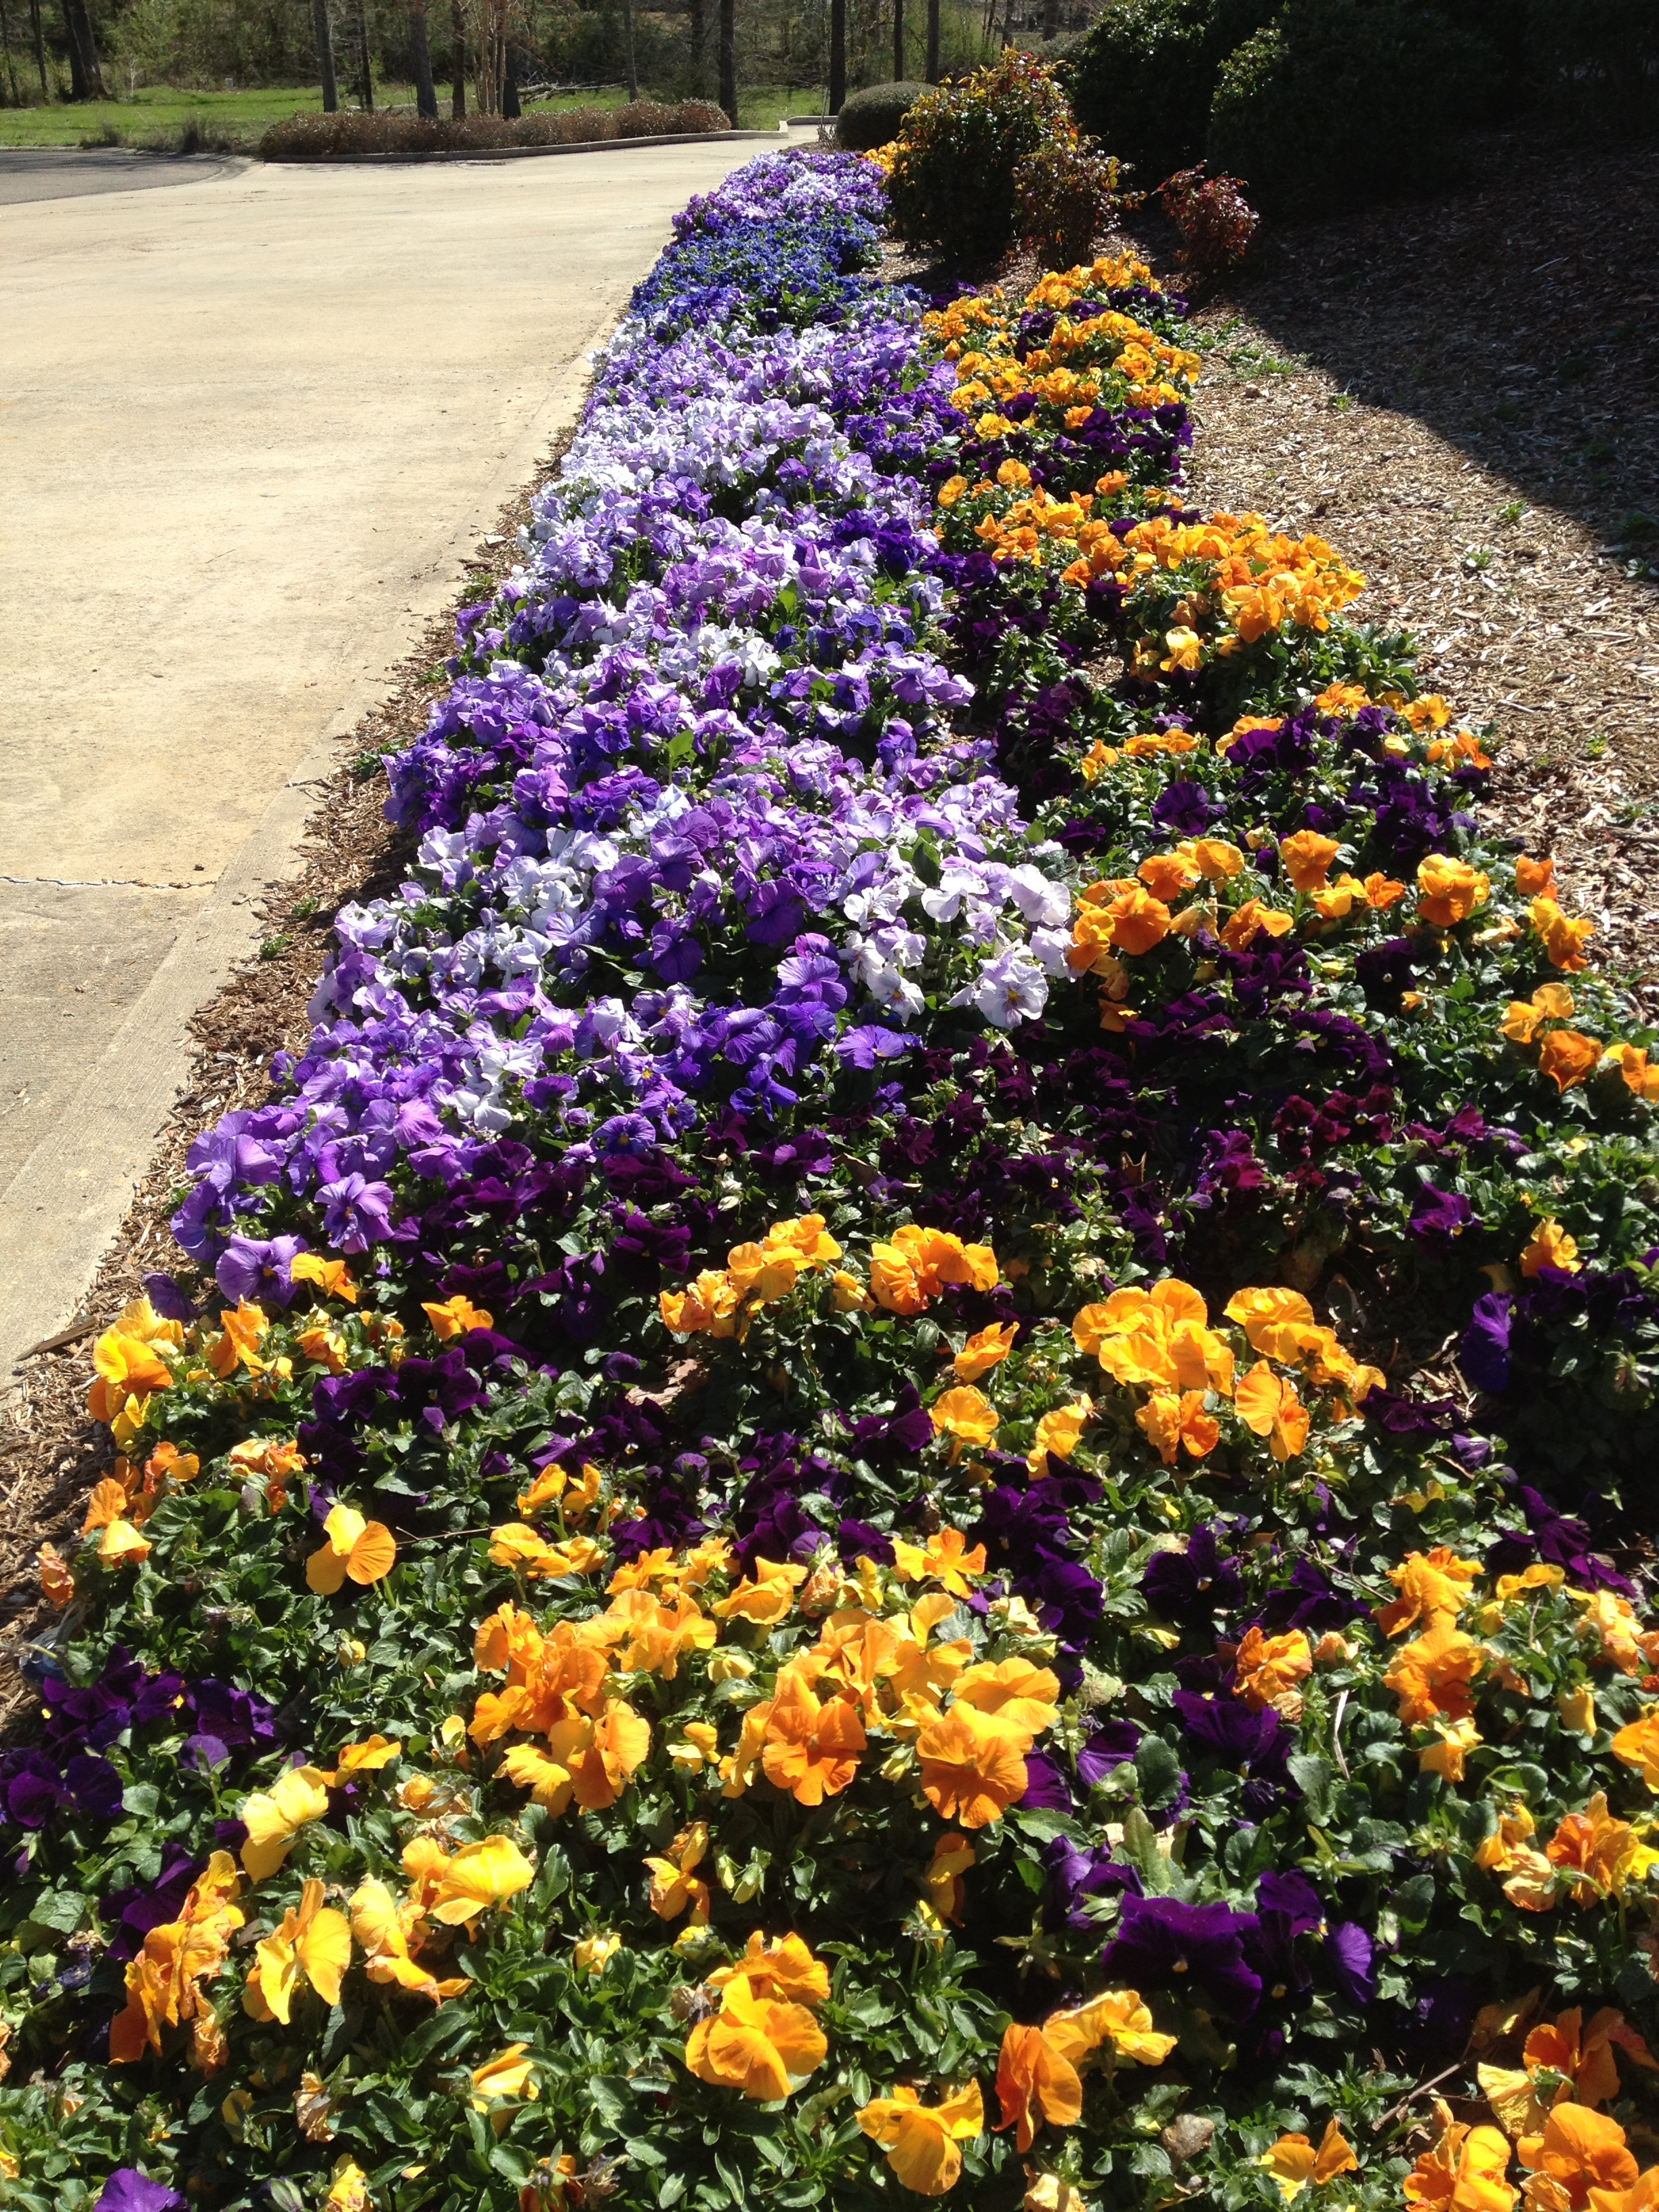 Pansies with Flower & Garden Mulch